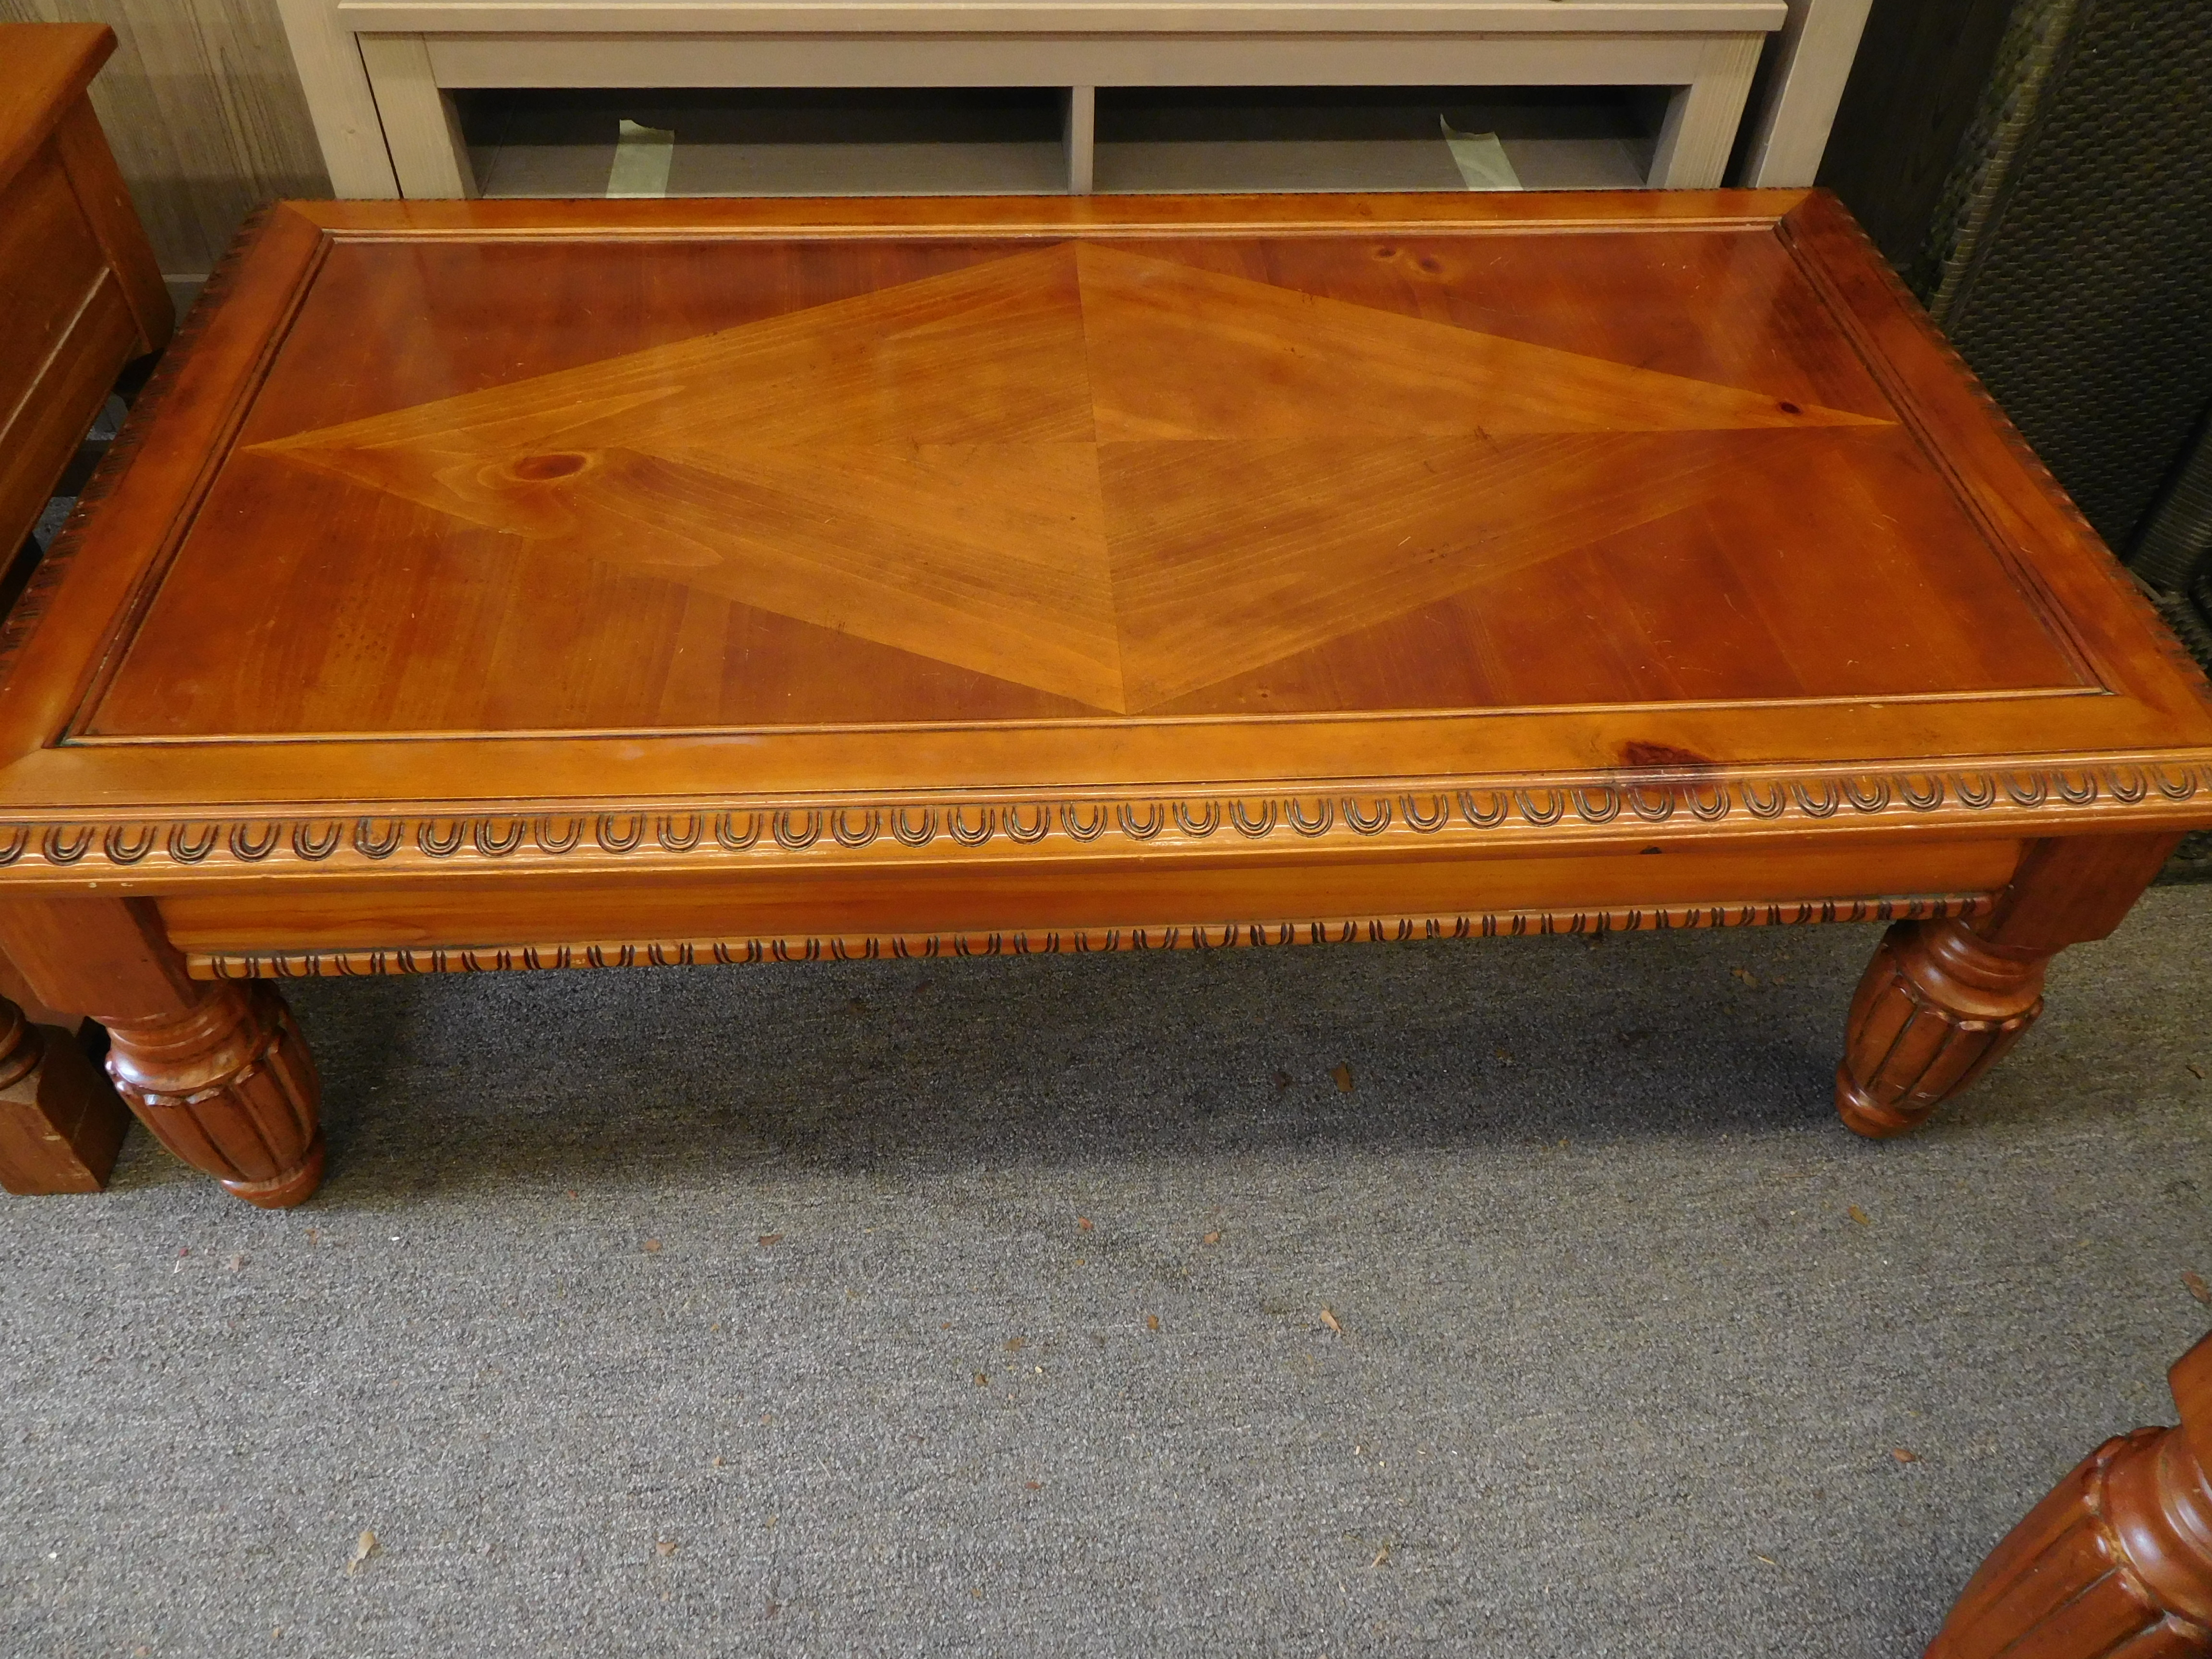 Coffee Table with Inlaid Wood Diamond and Carved Edges